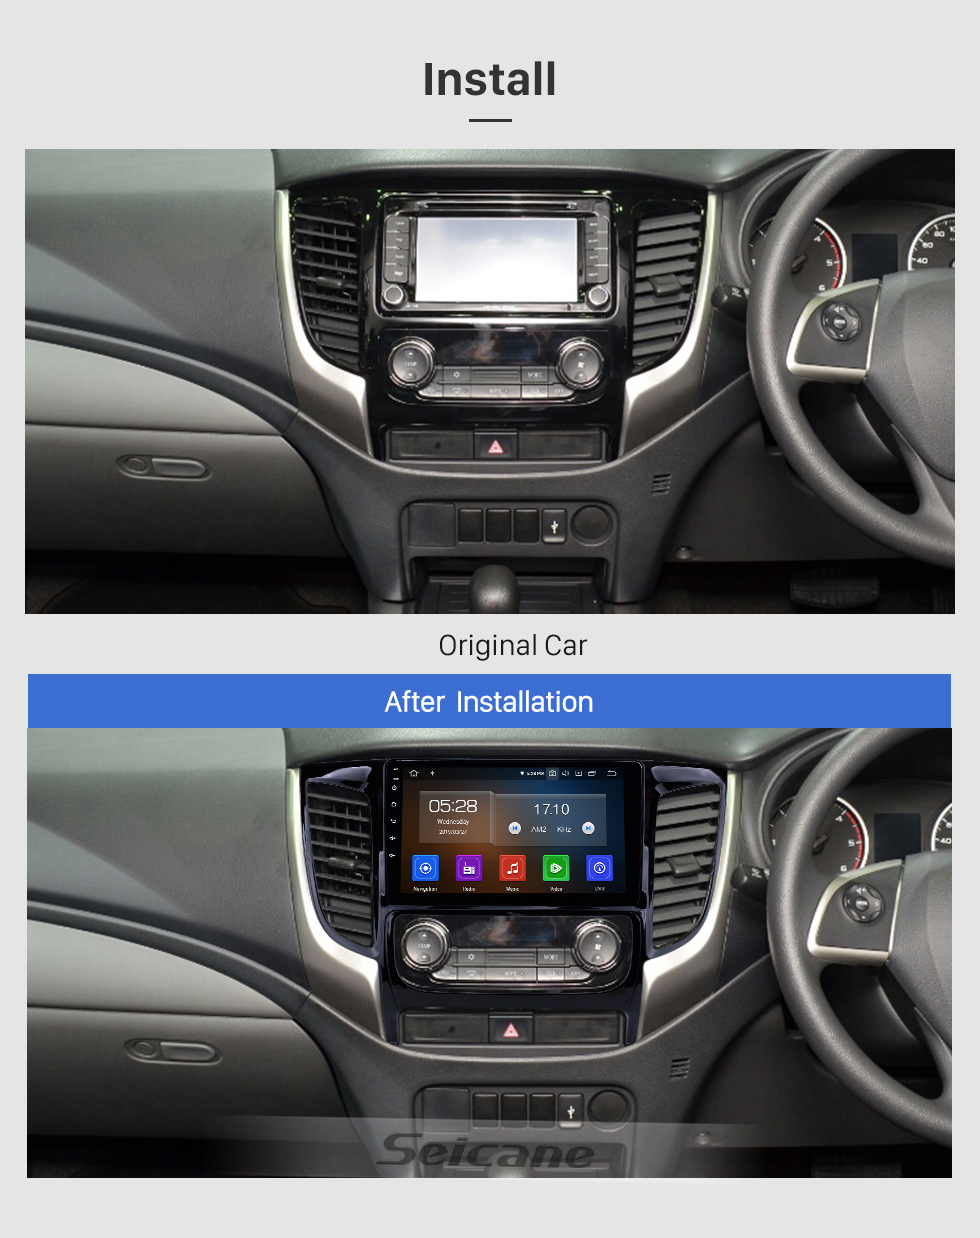 Seicane 2015 Mitsubishi TRITON Auto A/C 9 Inch Android 9.0 Radio GPS Navigation with HD Touchscreen Bluetooth WIFI Mirror Link USB AUX RDS Steering Wheel Control